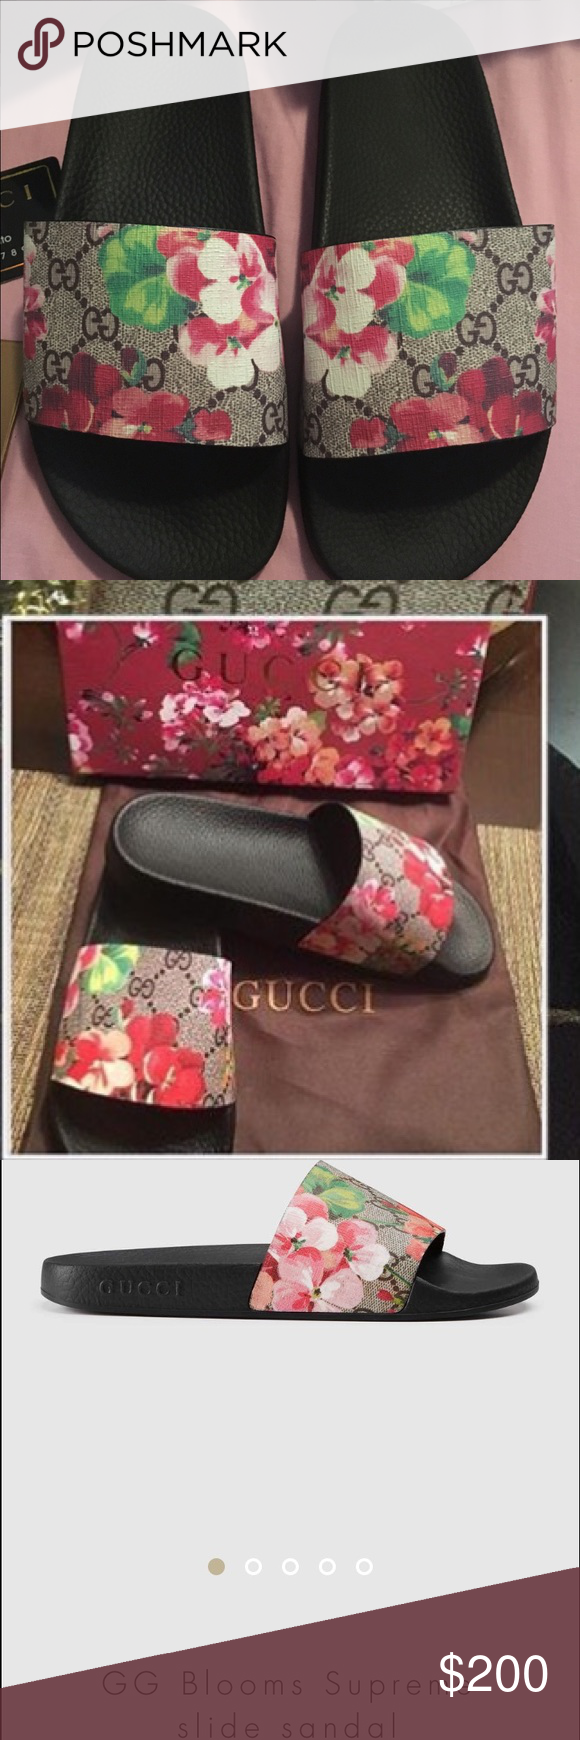 f80f55ef8ce0 GG Blooms Supreme Slide Sandal Comfortable floral slide sandal perfect for  a casual day out. Gucci Shoes Sandals